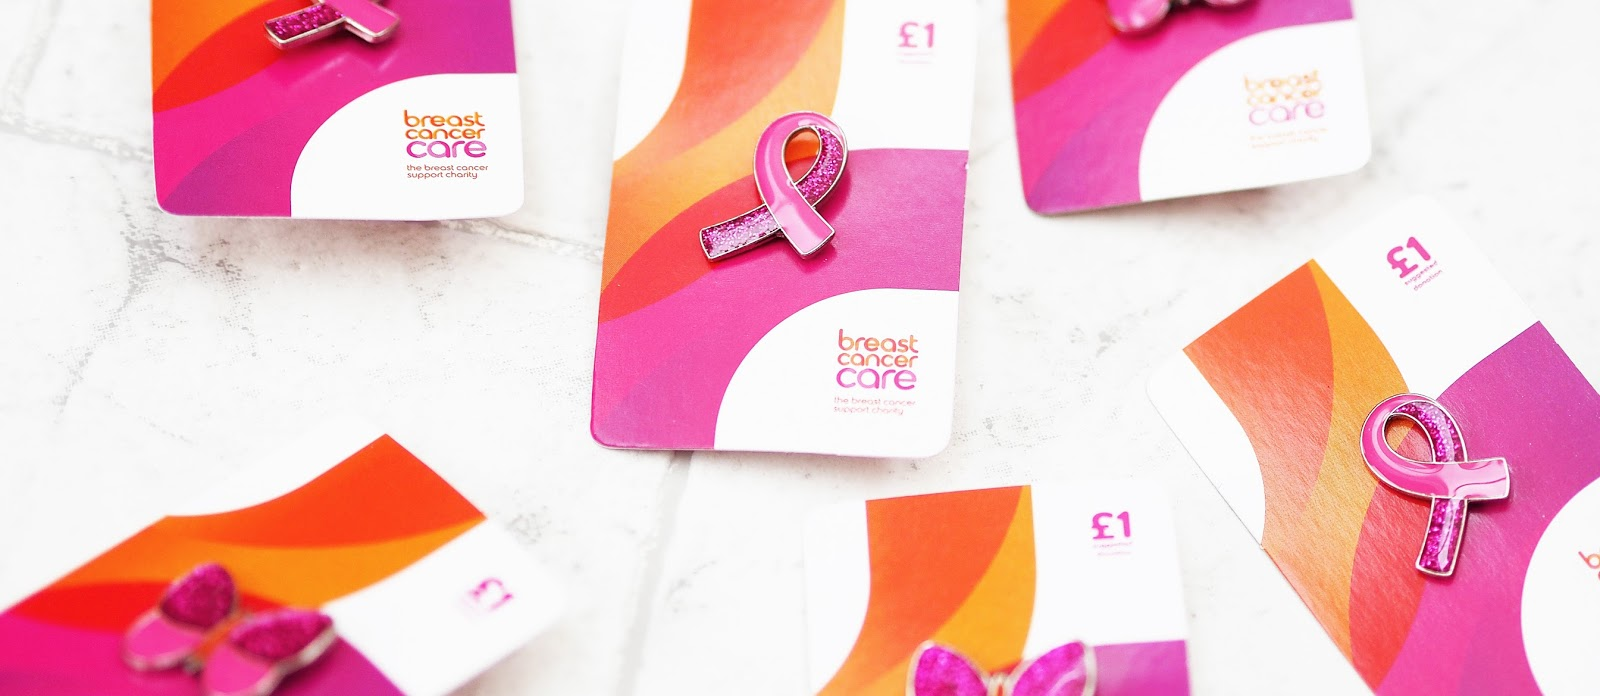 Looking after your boobies, with Breast Cancer Care